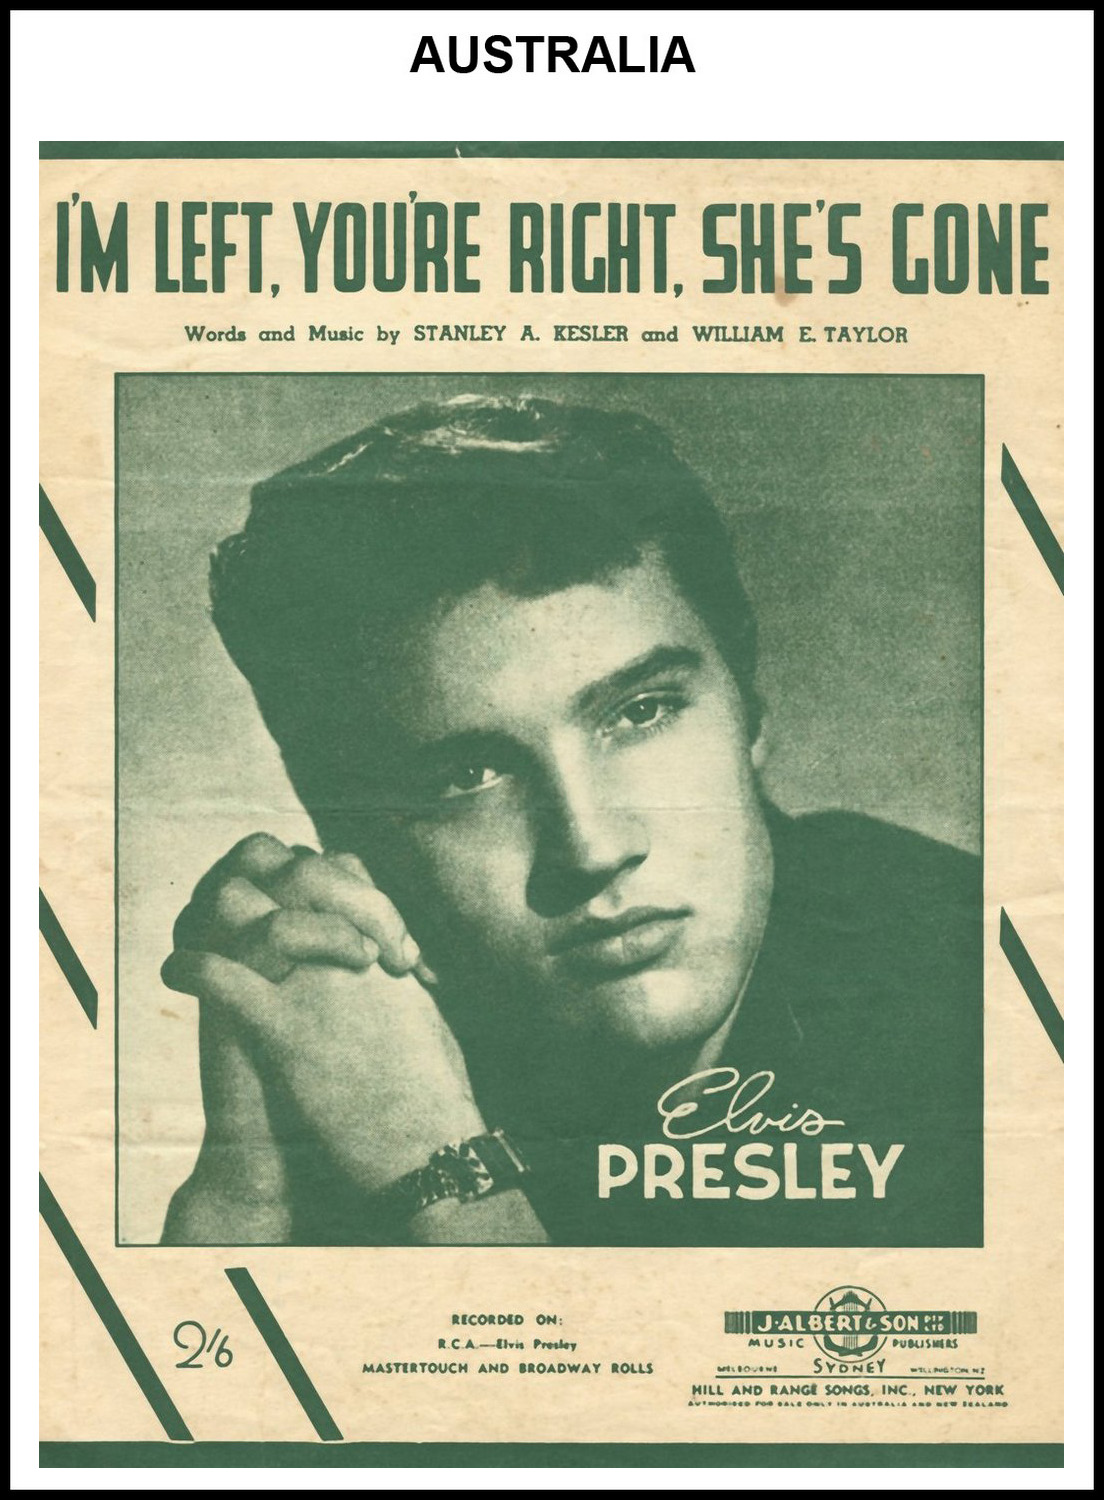 1955 - I'm Left, You're Right, She's Gone (Australia) (CHRIS GILES COLLECTION)